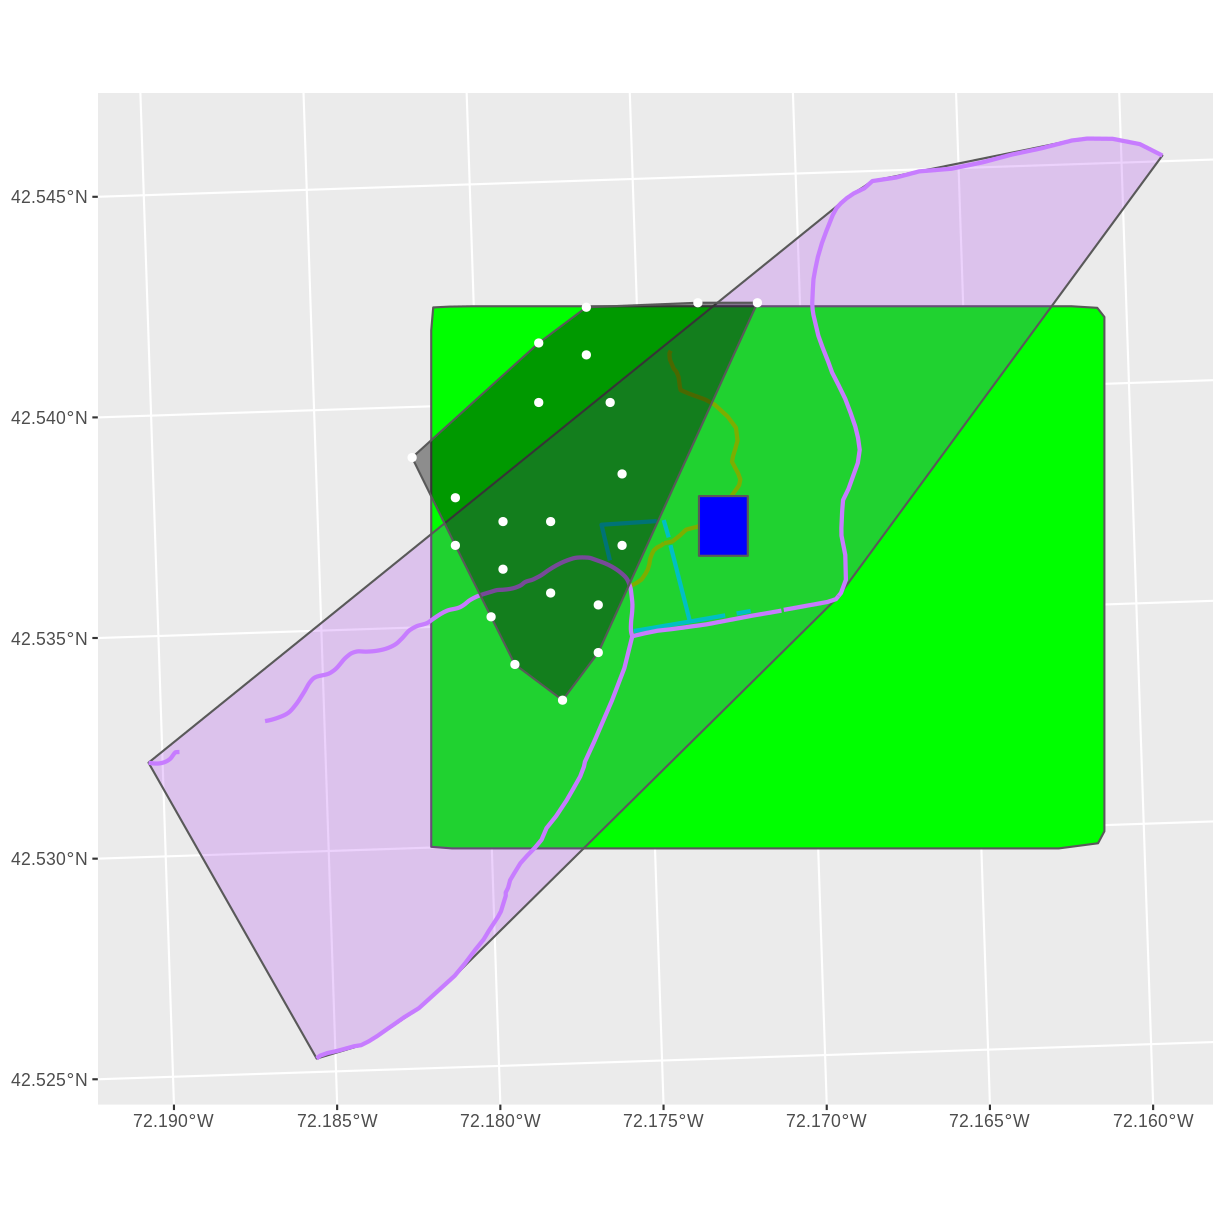 Introduction to Geospatial Raster and Vector Data with R